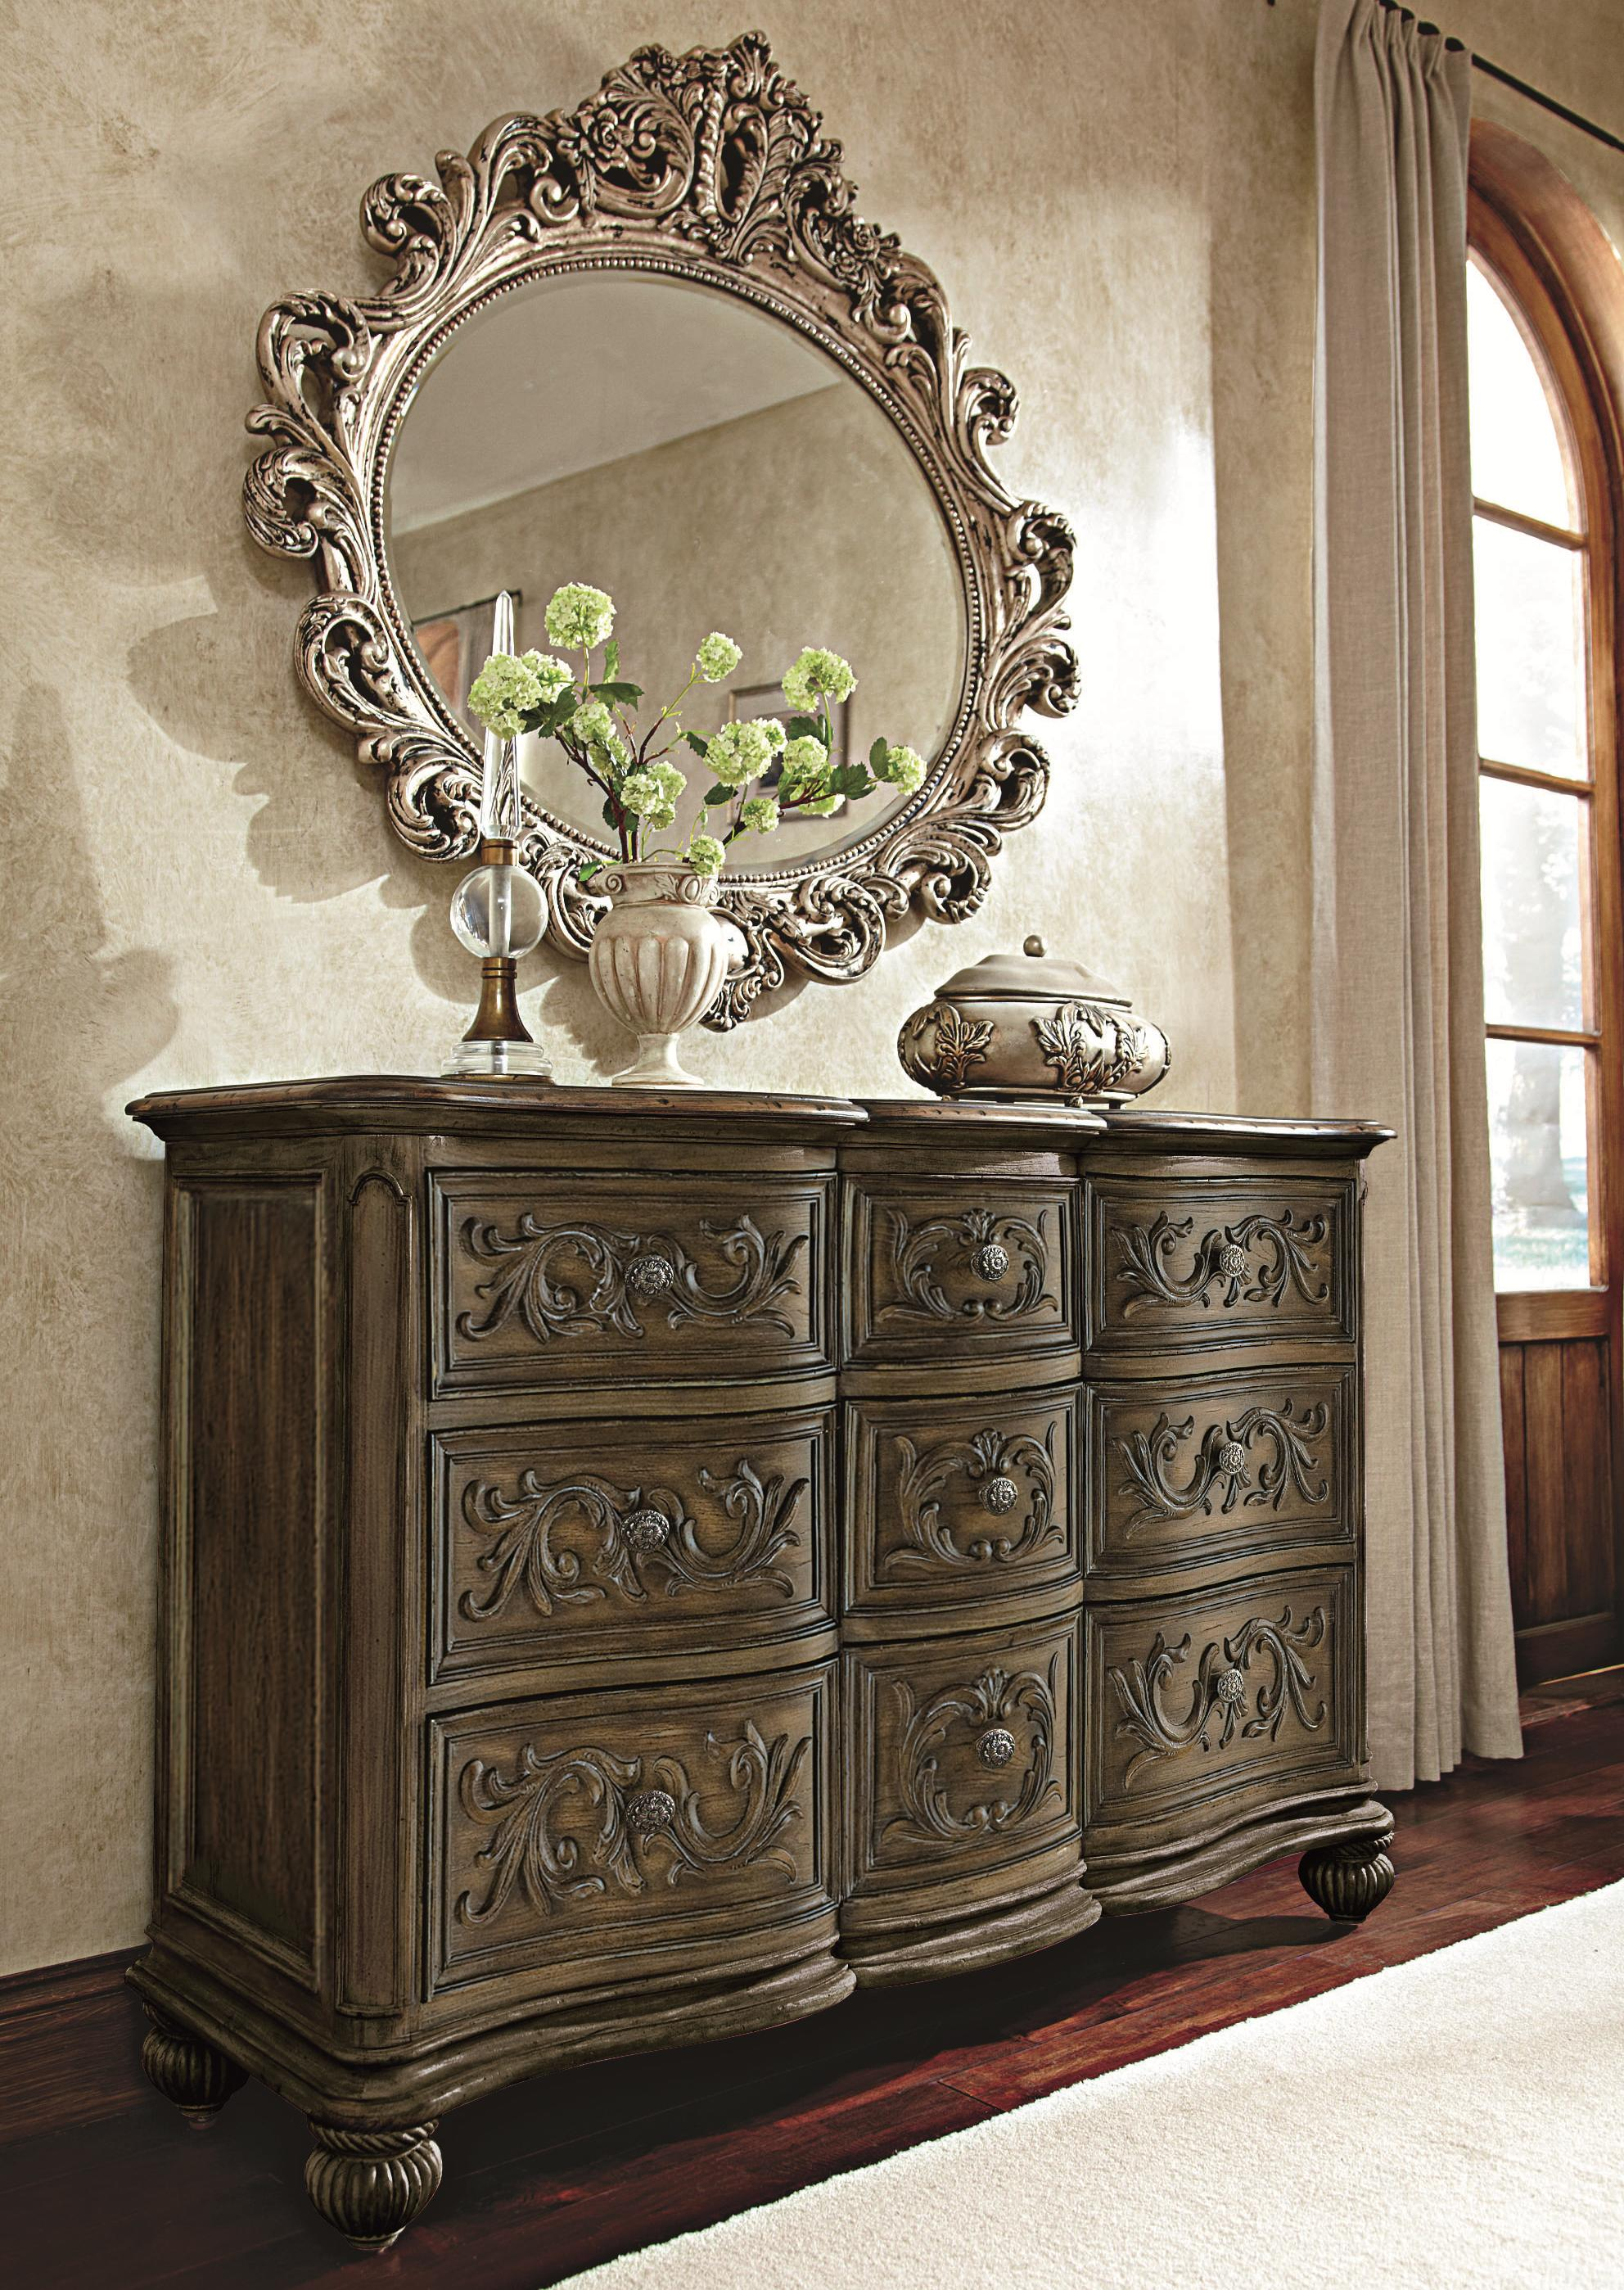 mirrors by drawer antique design combo products with hidden dresser traditional mirror furniture